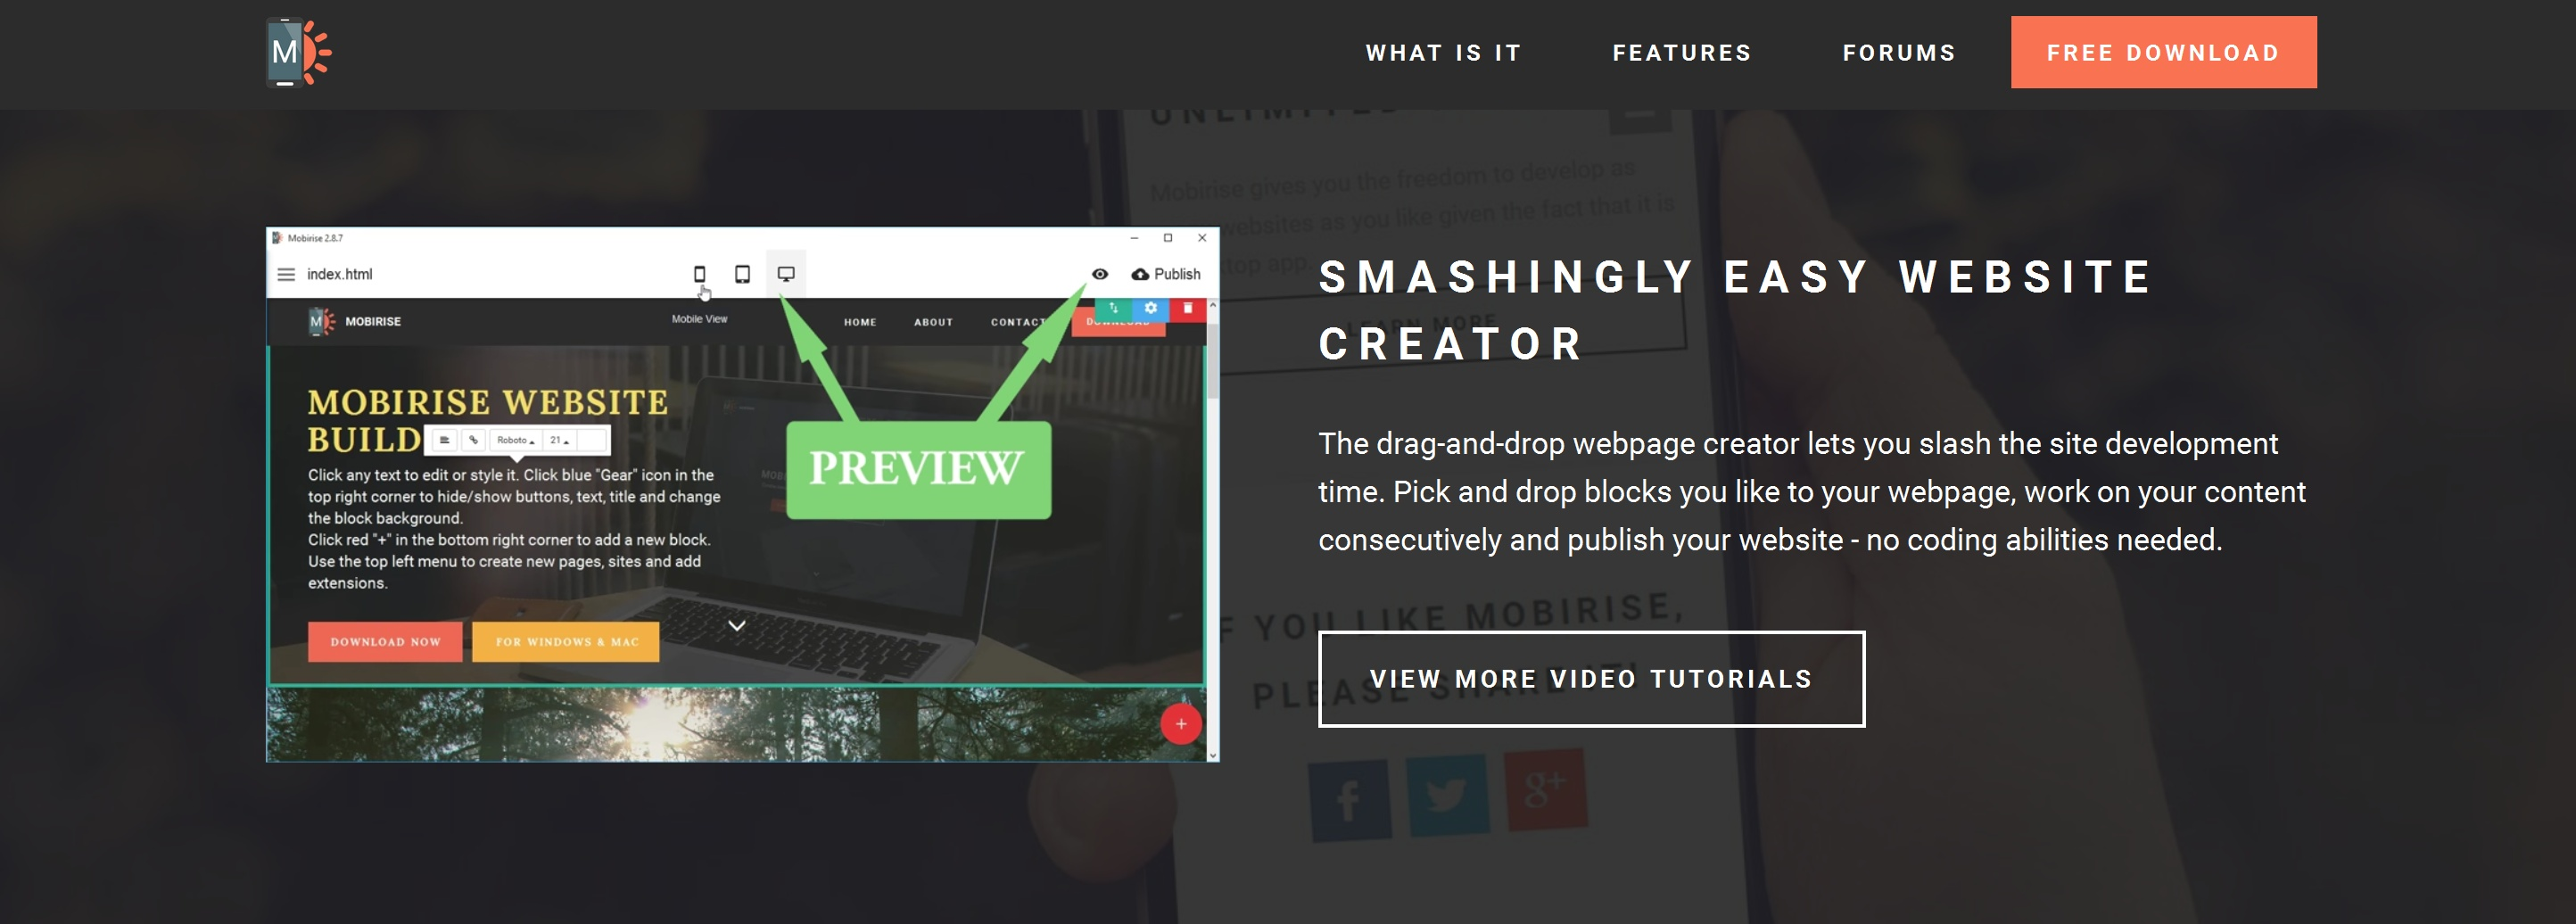 WYSIWYG Simple Website Builder Review